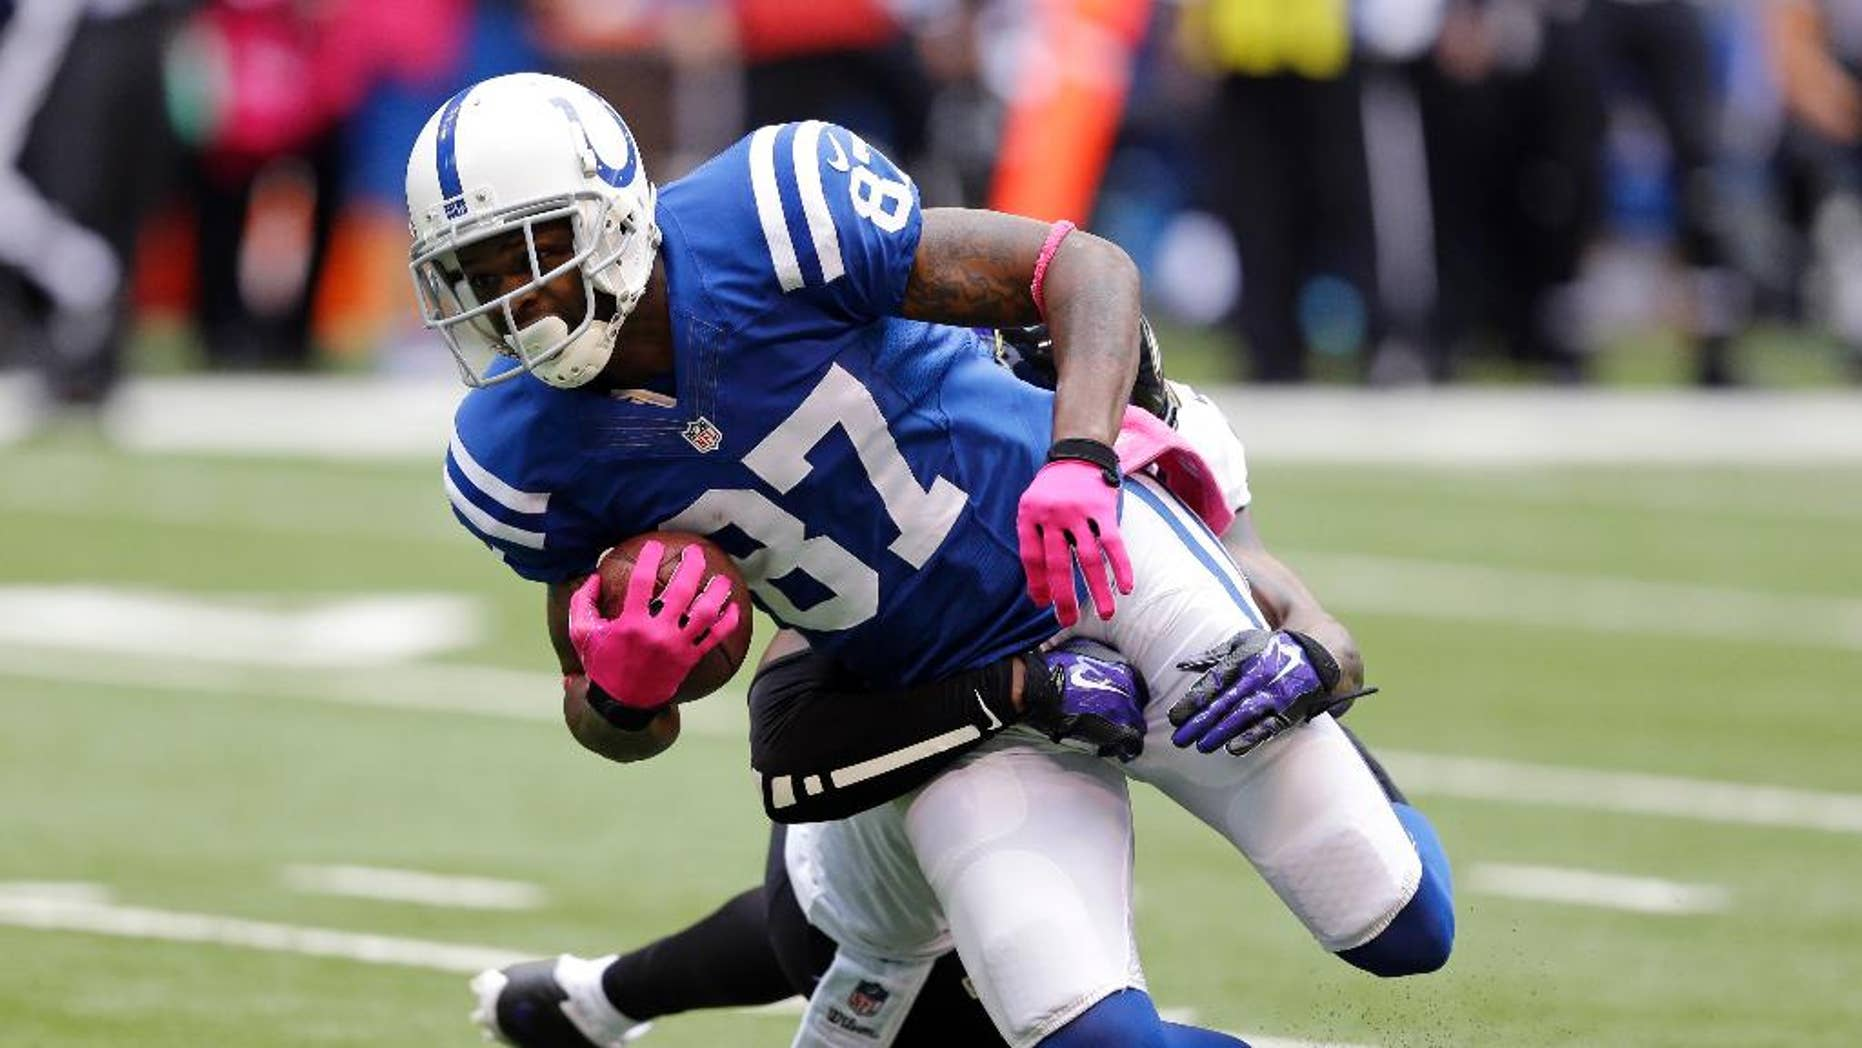 Indianapolis Colts wide receiver Reggie Wayne (87) is tackled by Baltimore Ravens free safety Darian Stewart after a first down during the first half of an NFL football game in Indianapolis, Sunday, Oct. 5, 2014. (AP Photo/Michael Conroy)